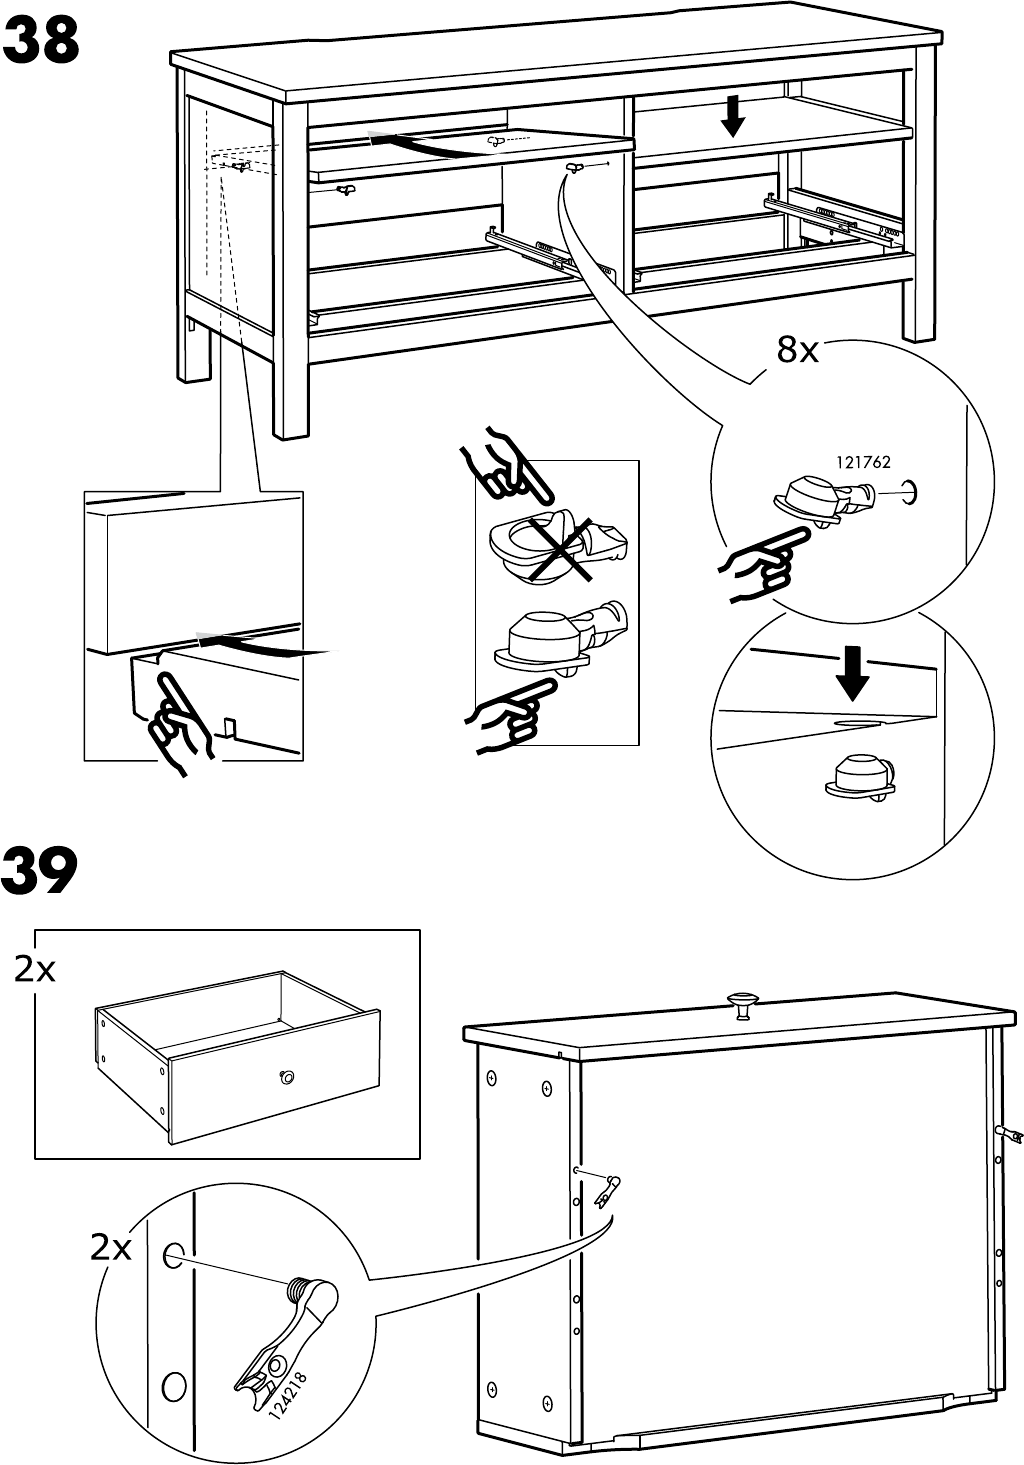 Hemnes Tv Kast.Manual Ikea Hemnes Tv Meubel Page 34 Of 36 All Languages